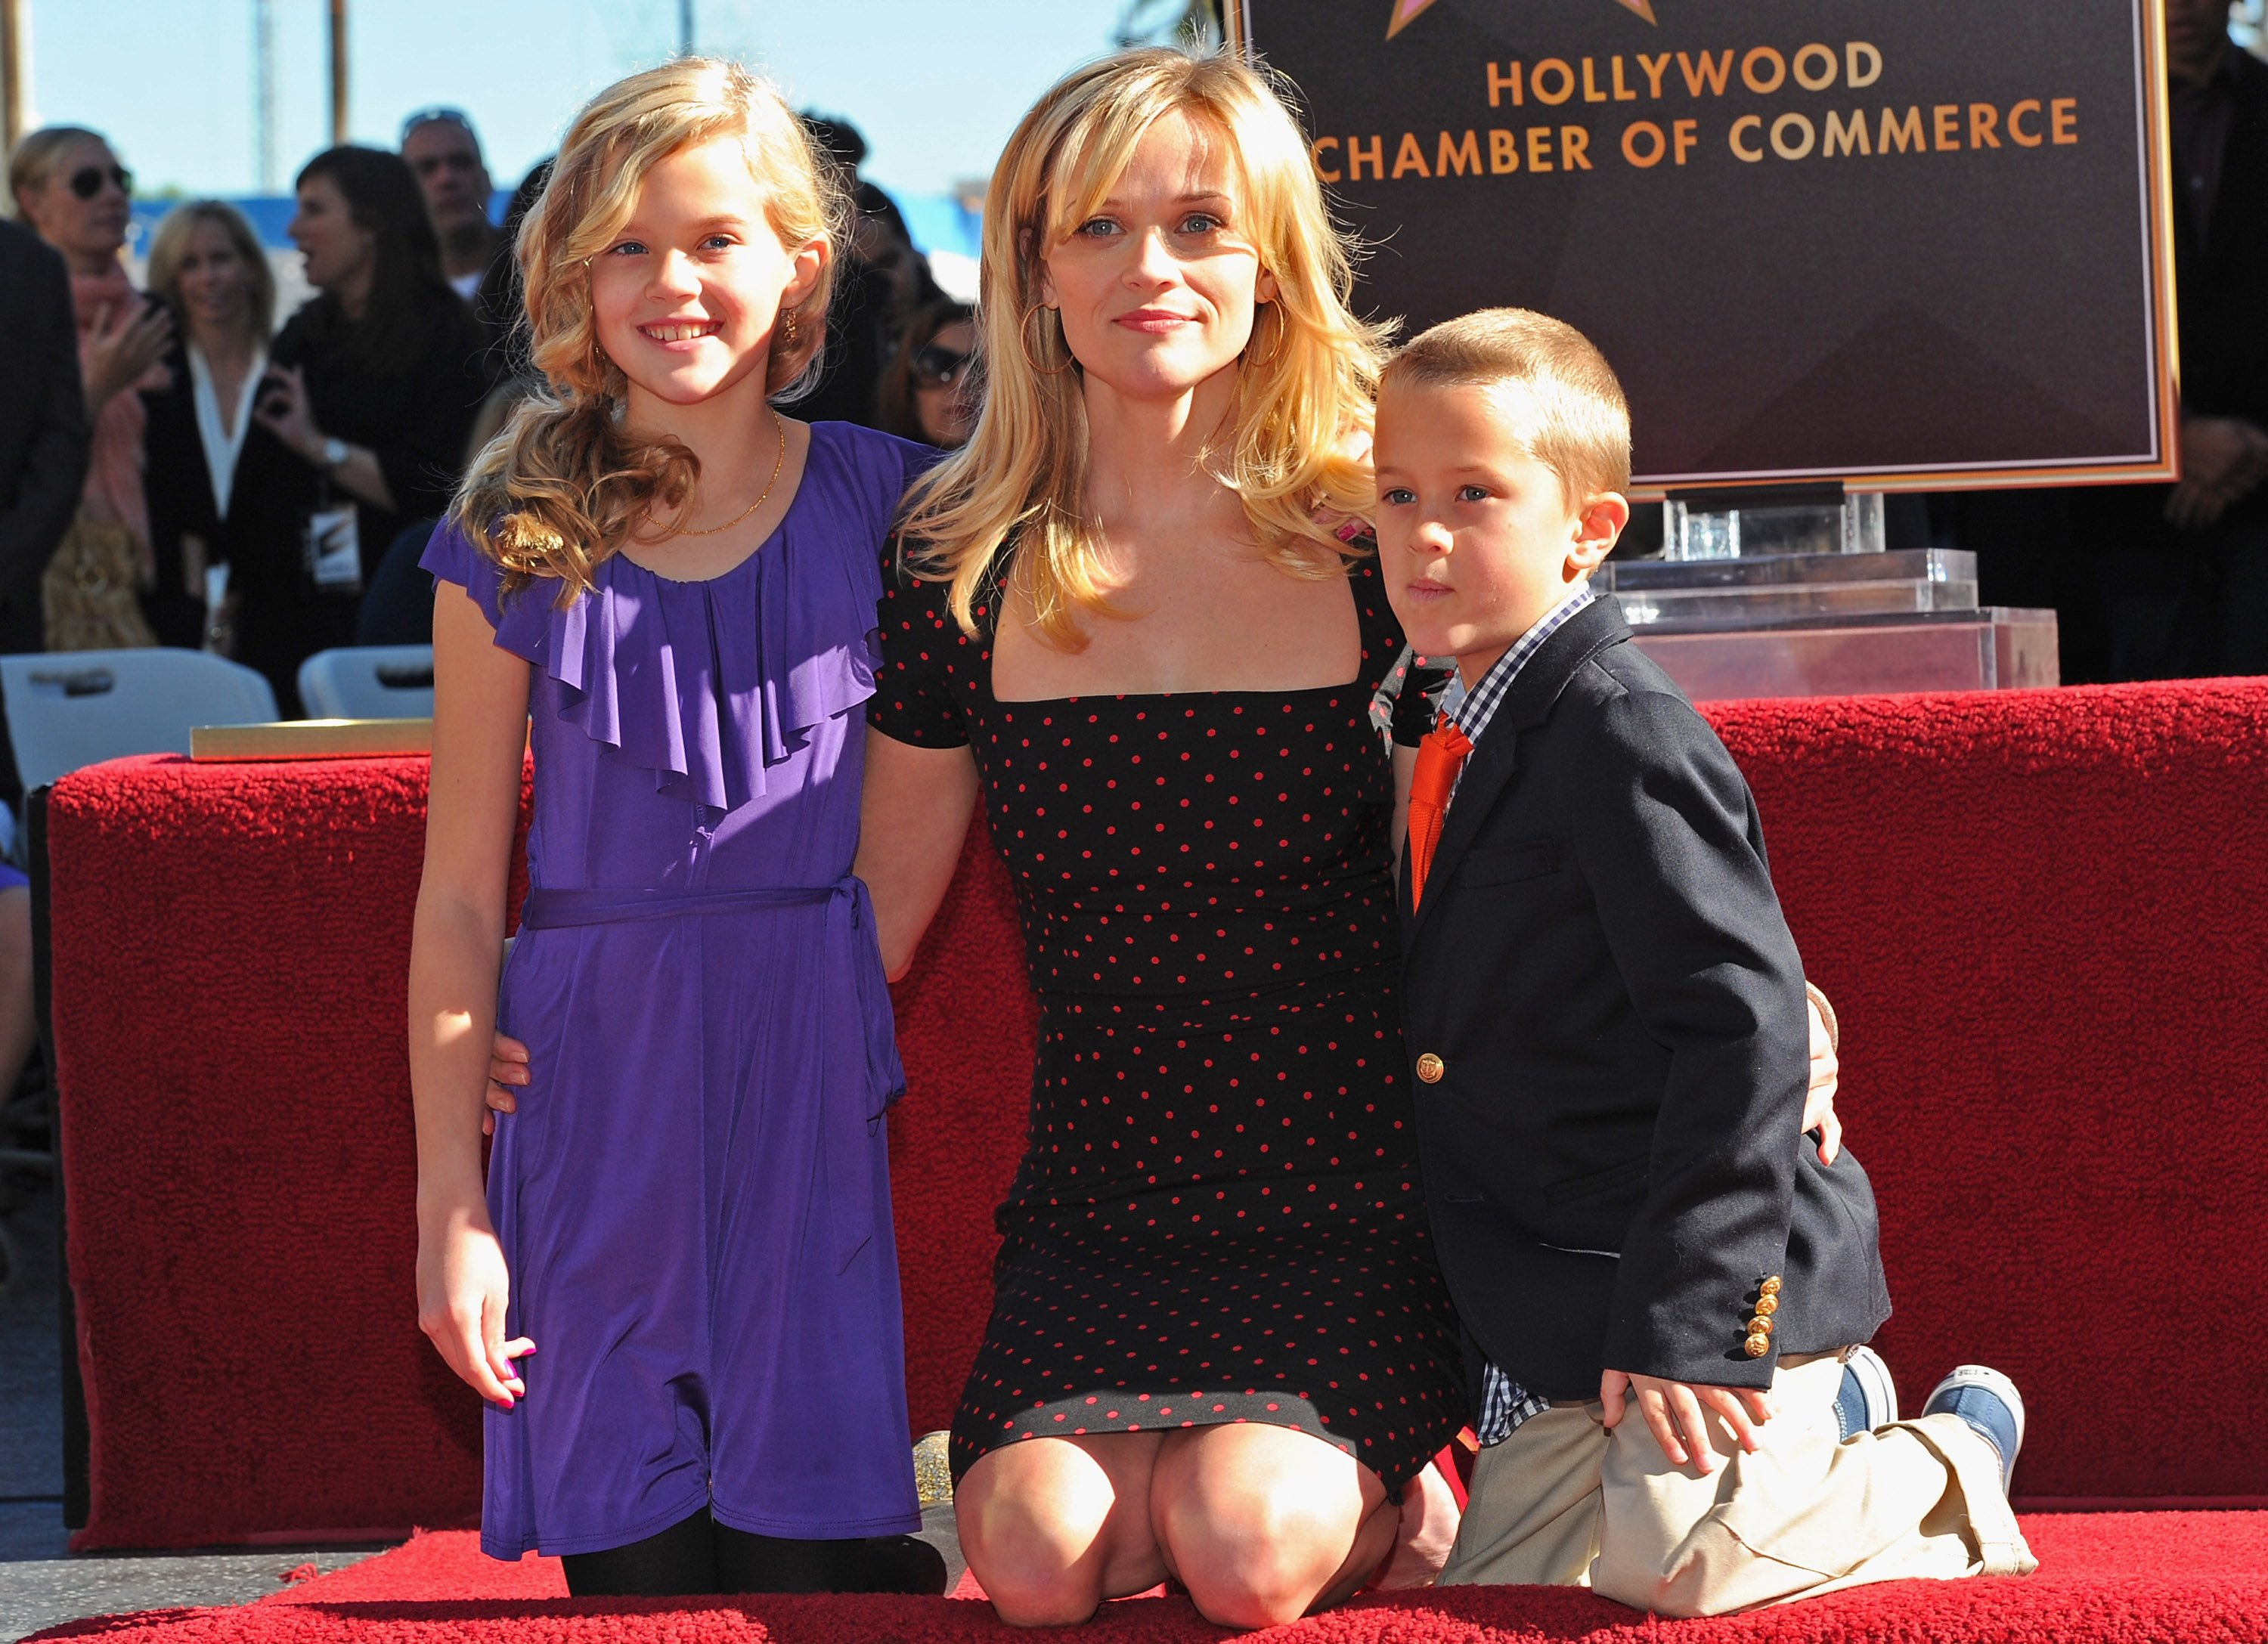 Reese Witherspoon with daughter Ava and son Deacon Phillippe at the Hollywood Walk of Fame Star honoring the actress in Hollywood, California on December 1, 2010 | Photo: Getty Images